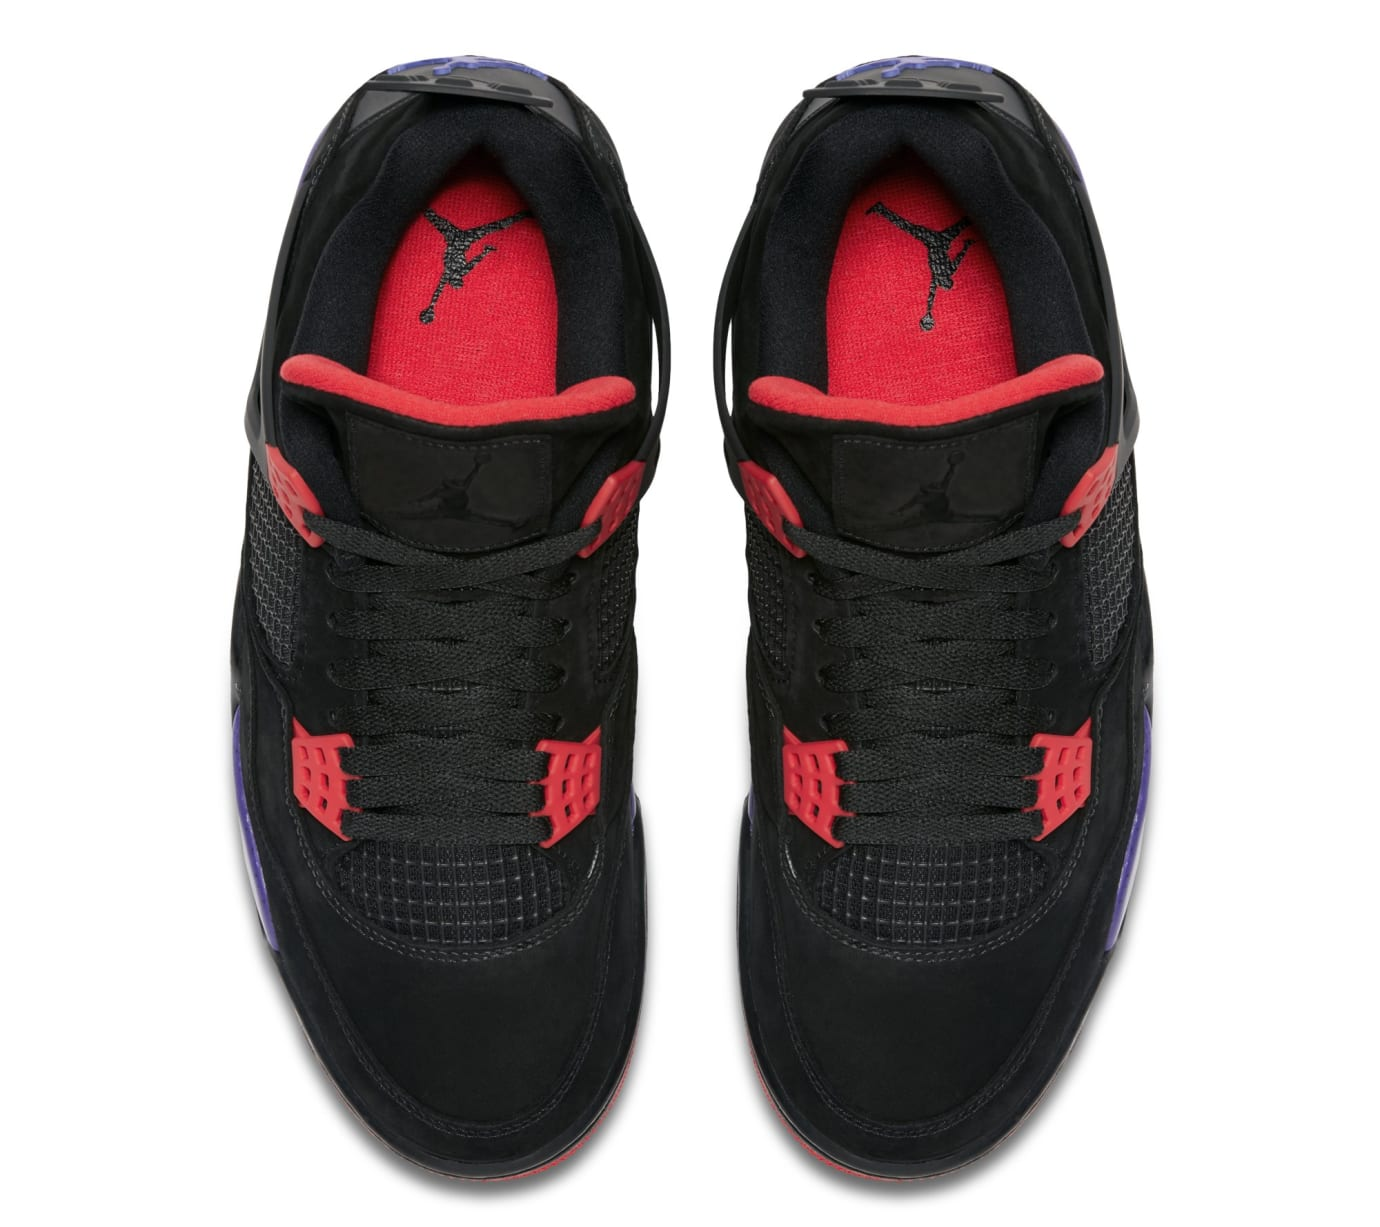 super popular 1340a 3d13d Image via Nike Air Jordan 4  Raptors  AQ3816-065 (Top)